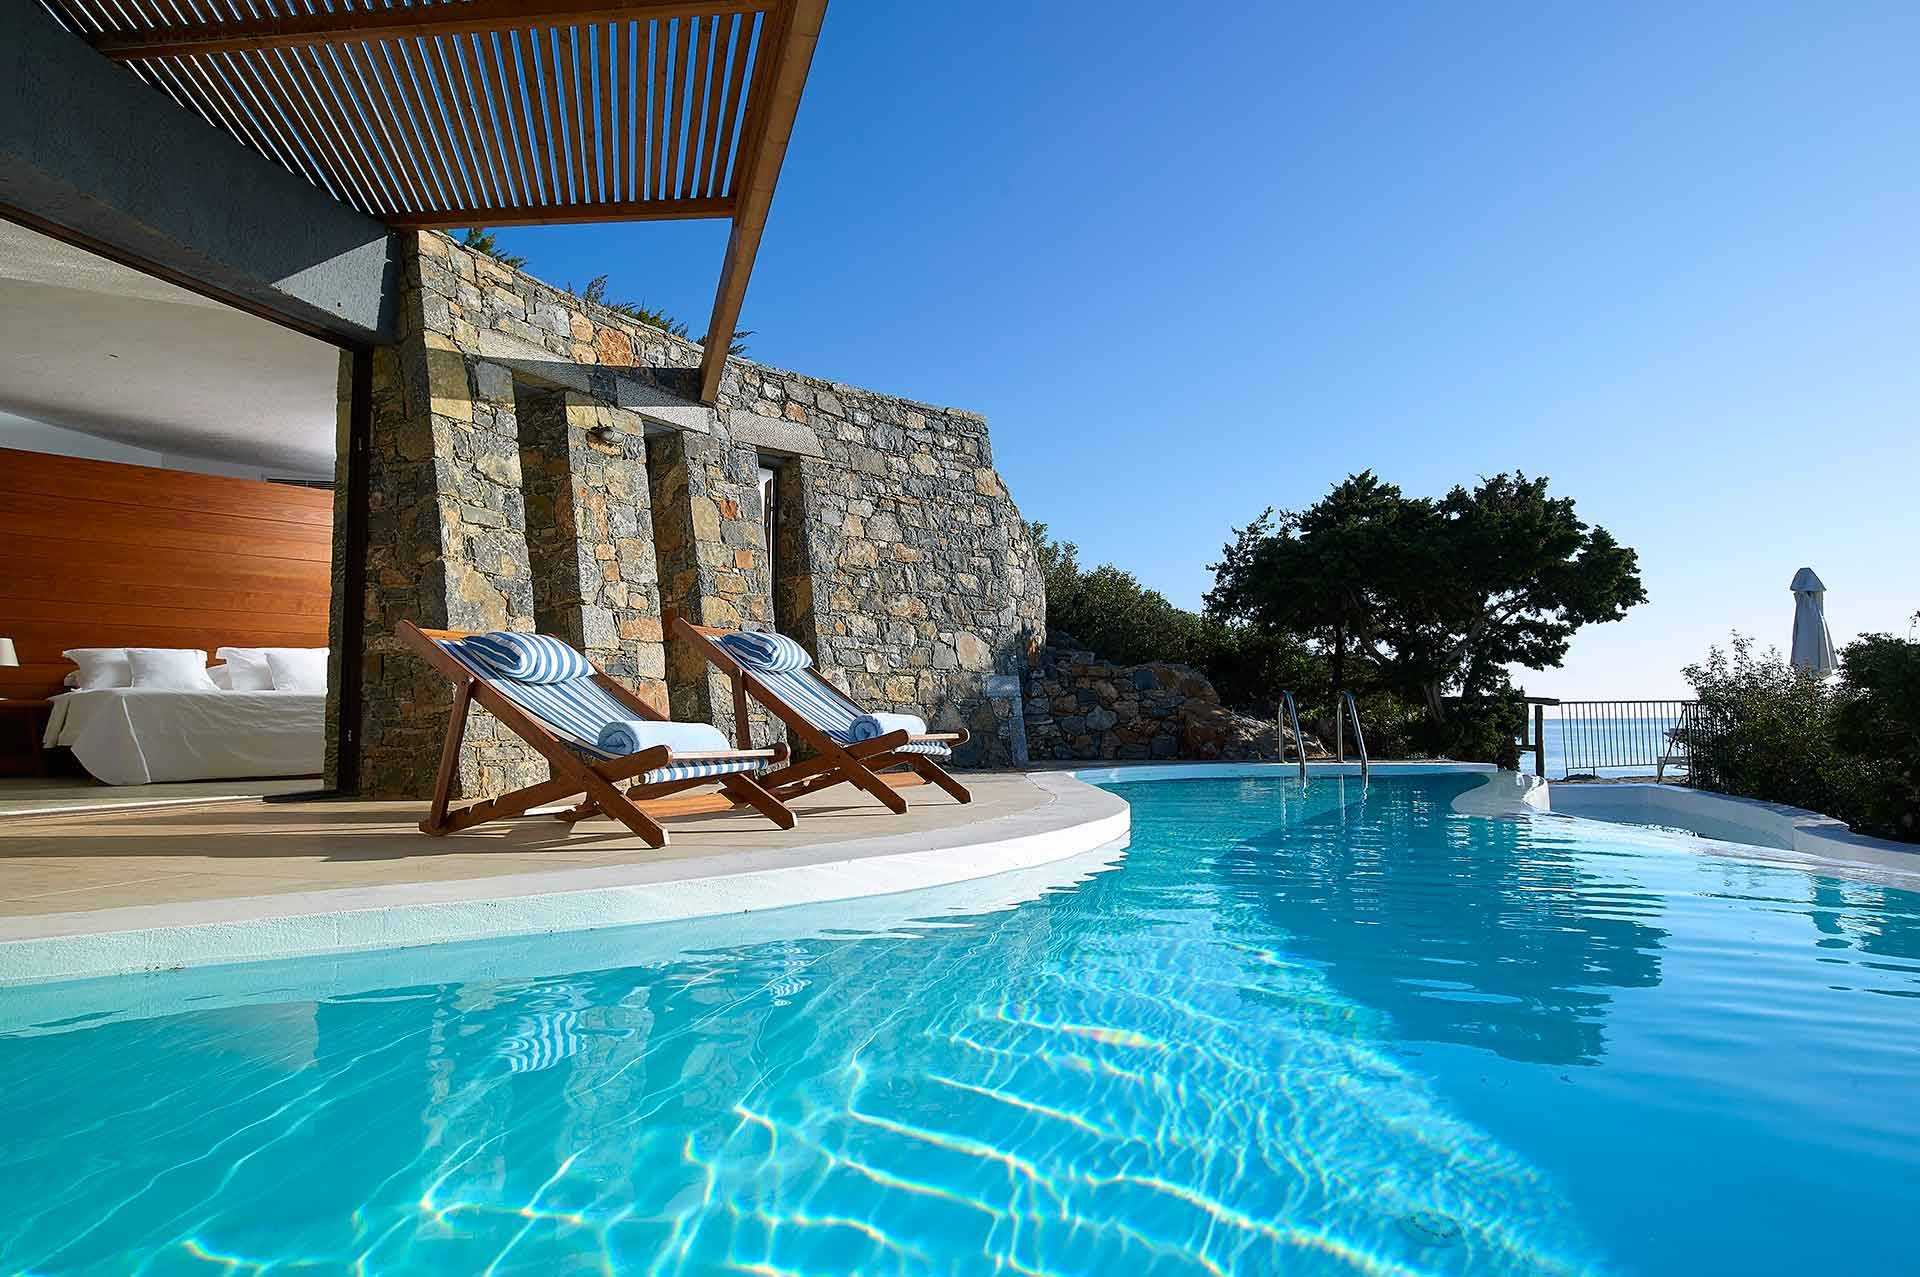 Crete luxury villa Daphne and Chloe Studio in Agios Nikolaos